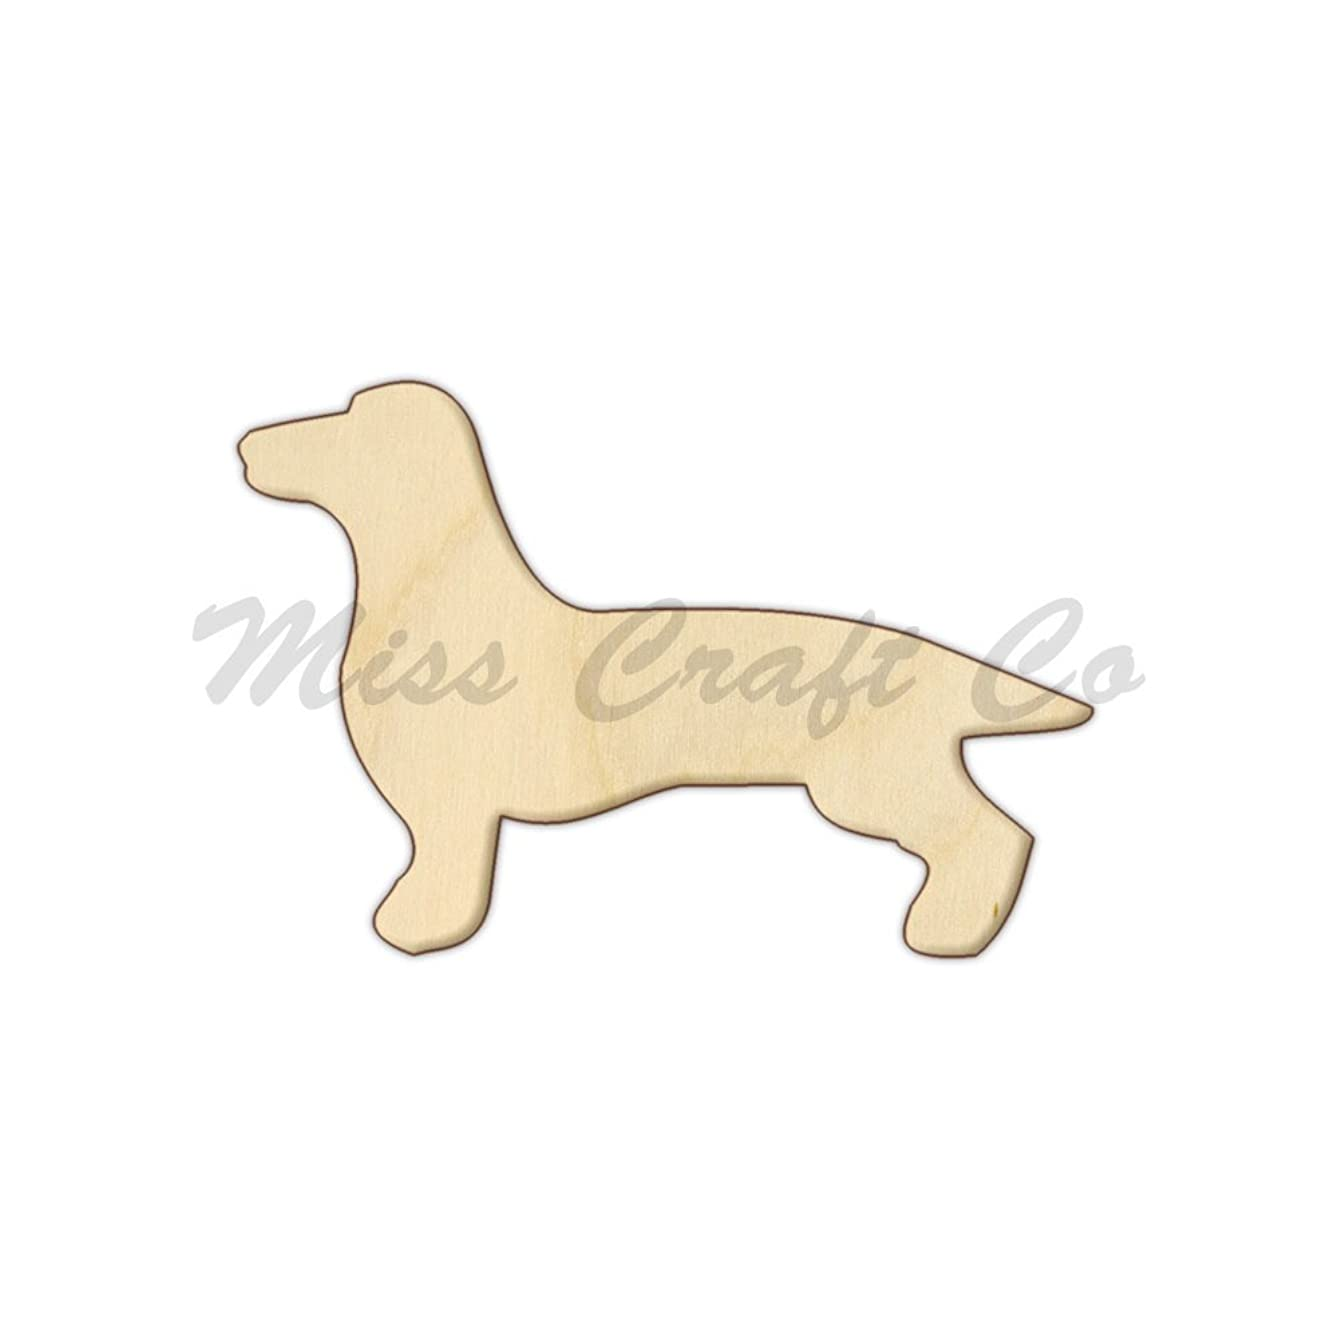 Dachshund Wood Shape Cutout, Wood Craft Shape, Unfinished Wood, DIY Project. All Sizes Available, Small to Big. Made in the USA. 10 X 6.7 INCHES